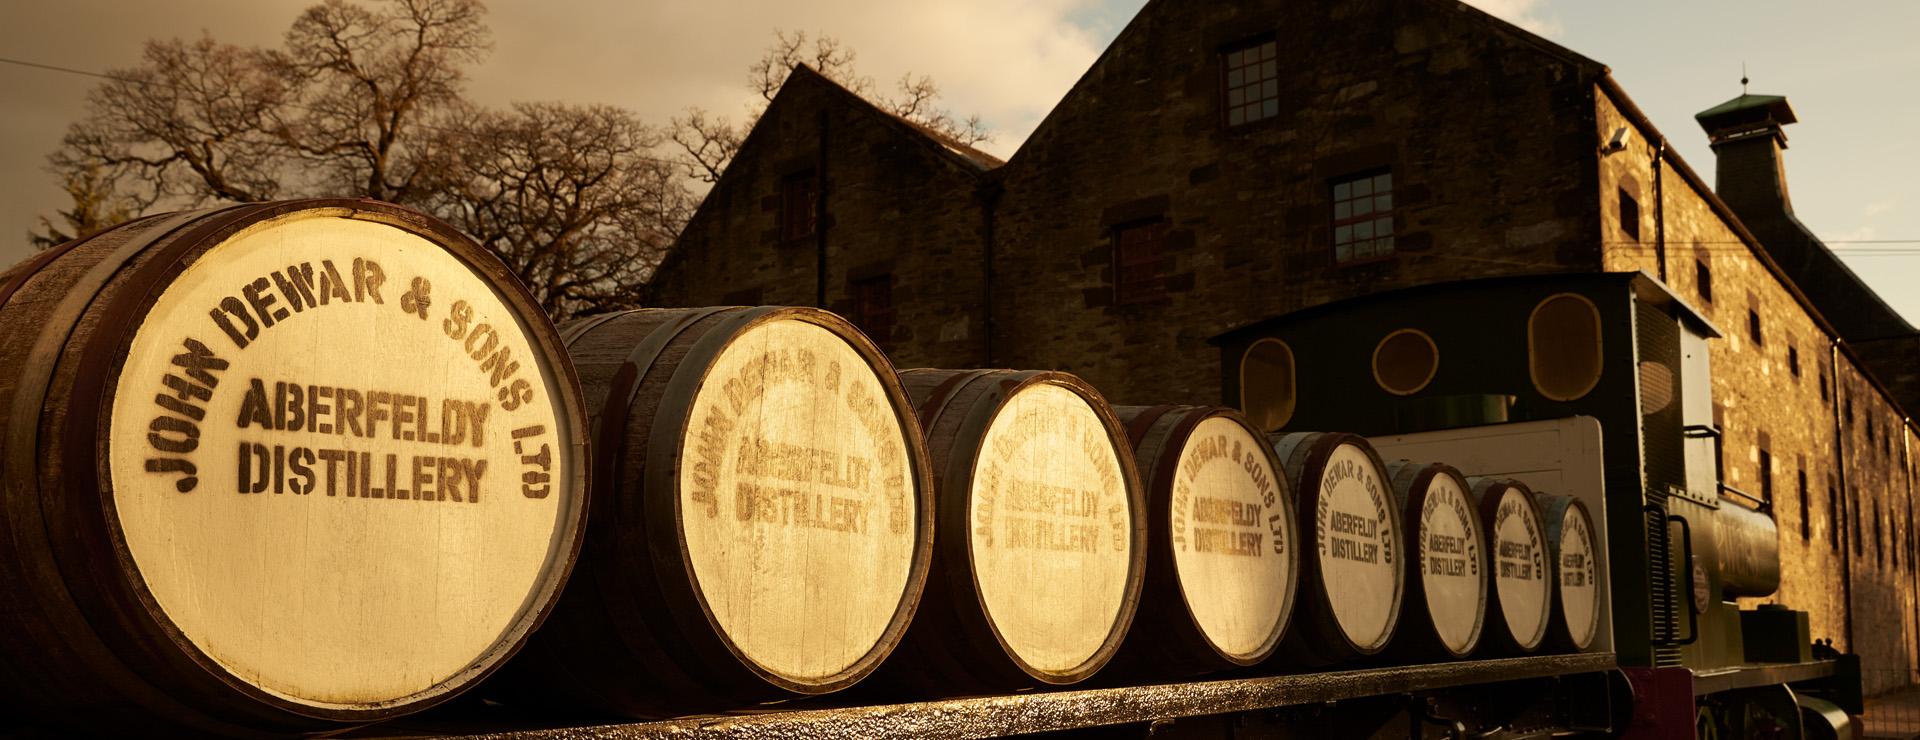 Puggie train at Dewar's Aberfeldy Distillery - Highland whisky distillery